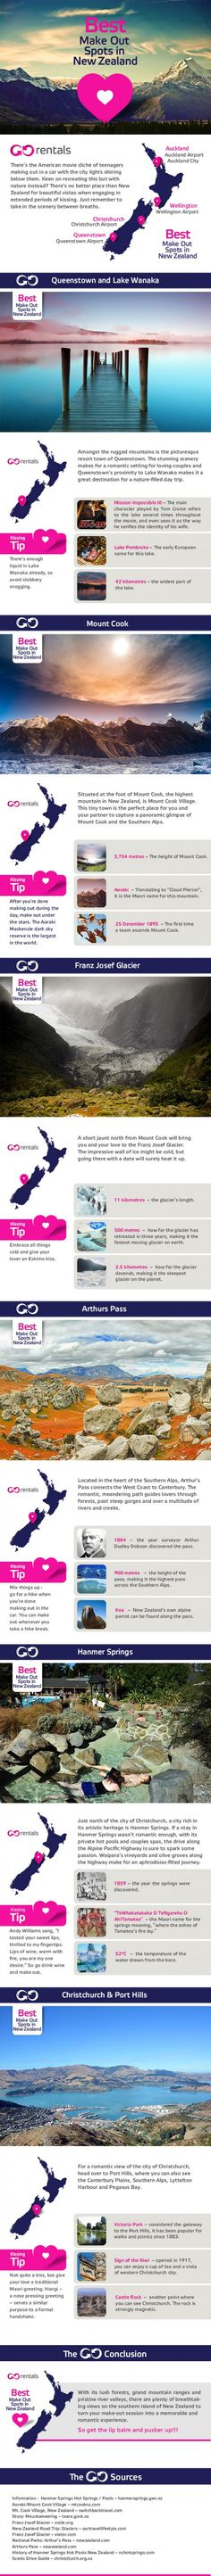 #Travel #Infographic: The Best Make Out Spots in #NewZealand